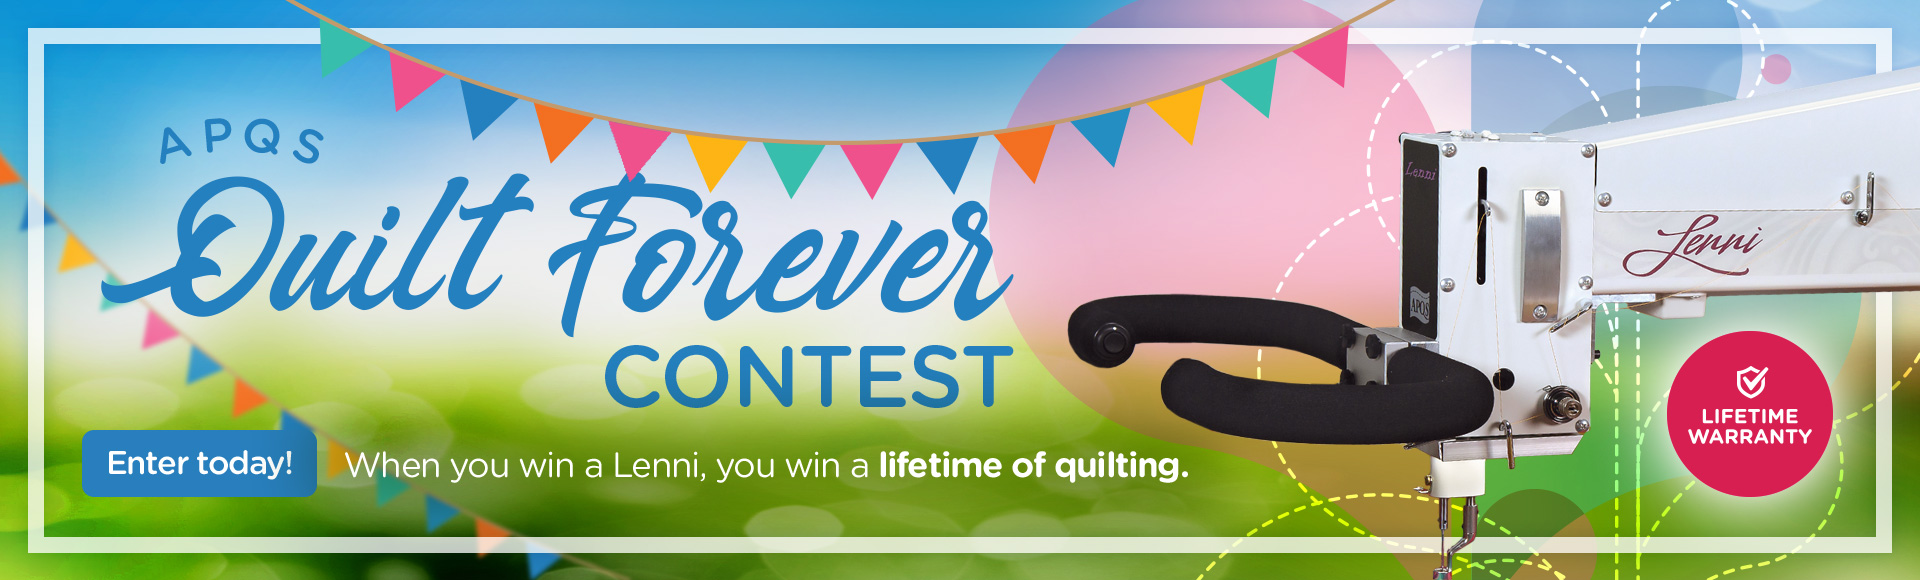 Quilt Forever Contest Win a Lenni